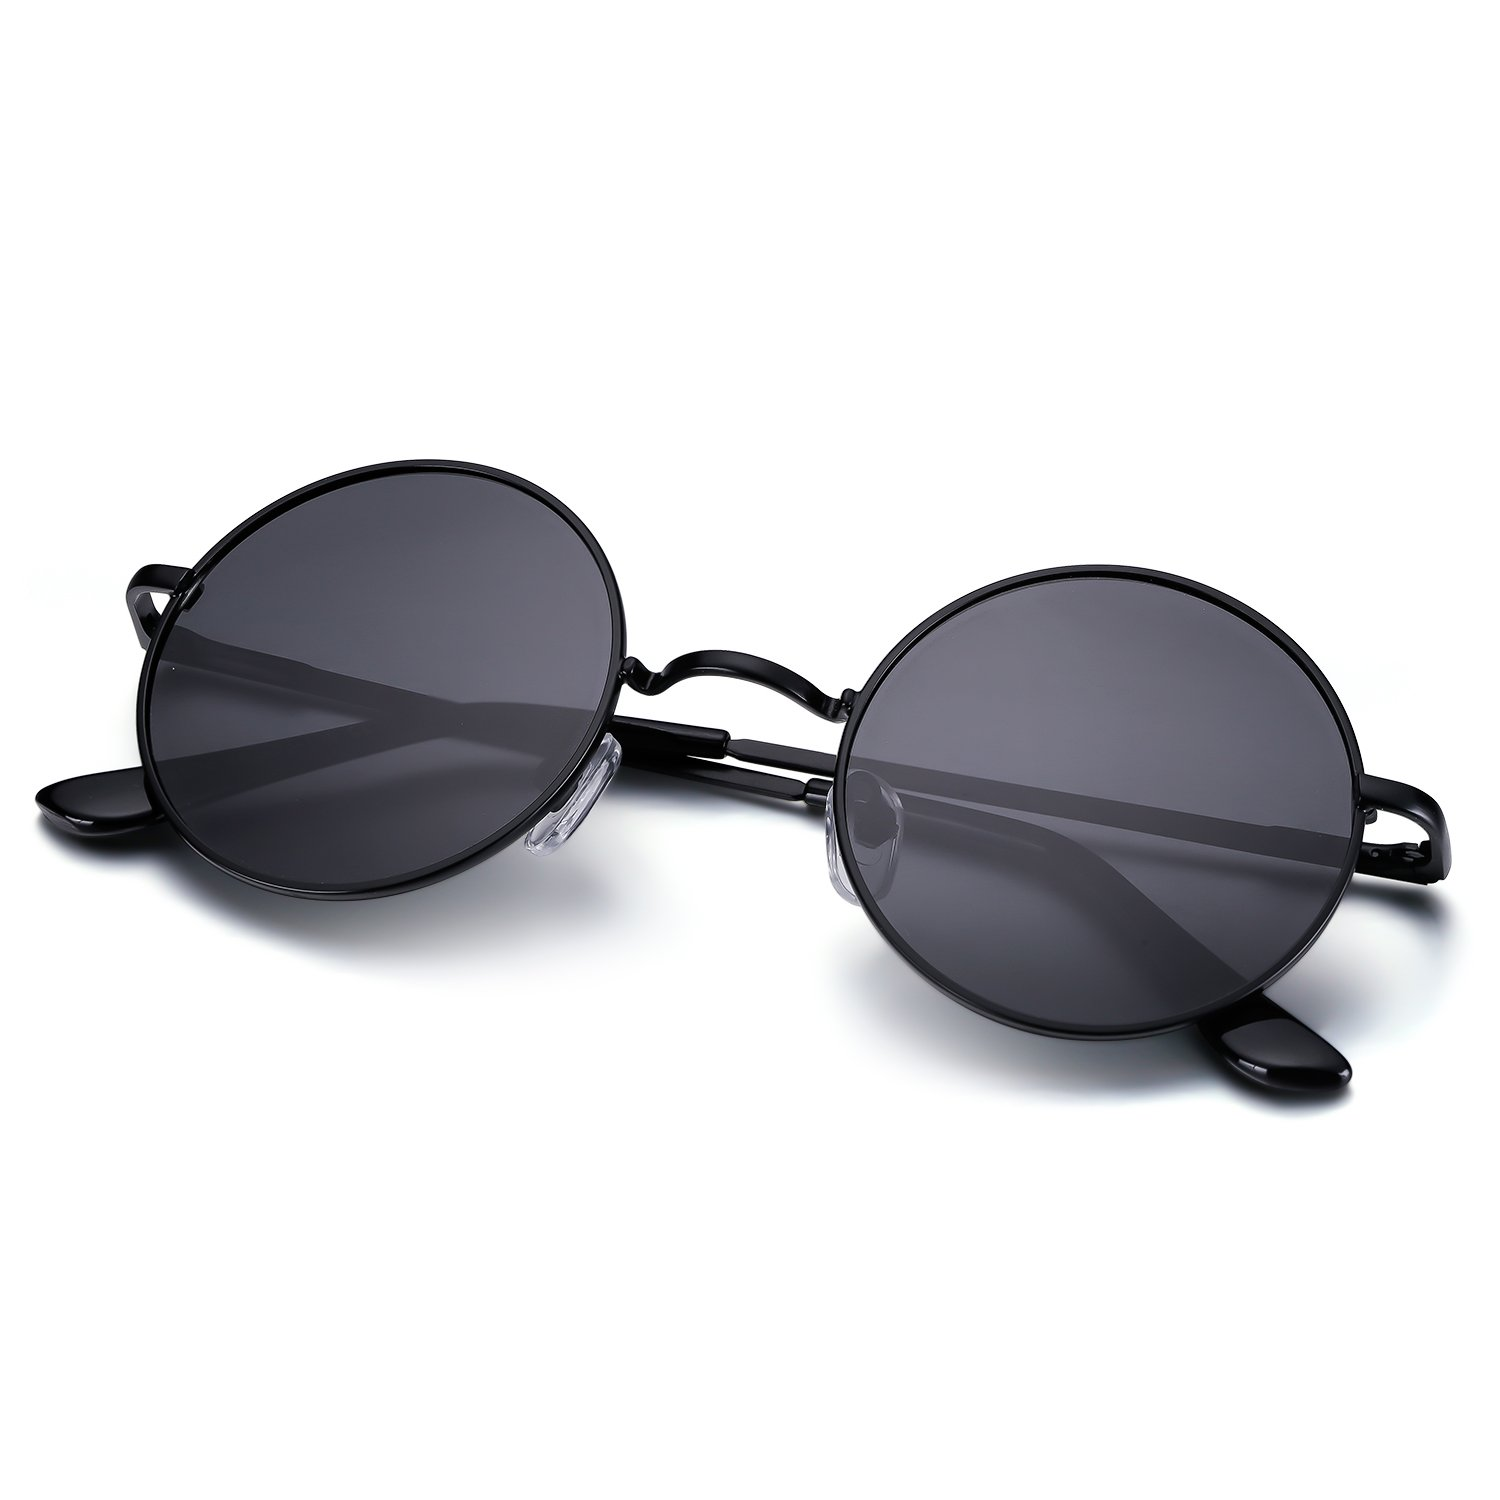 b59ea93ce1a Amazon.com  Menton Ezil Circle Classic Metal Frame Sunglasses Polarized  Mens Driving Glasses UV400  Clothing